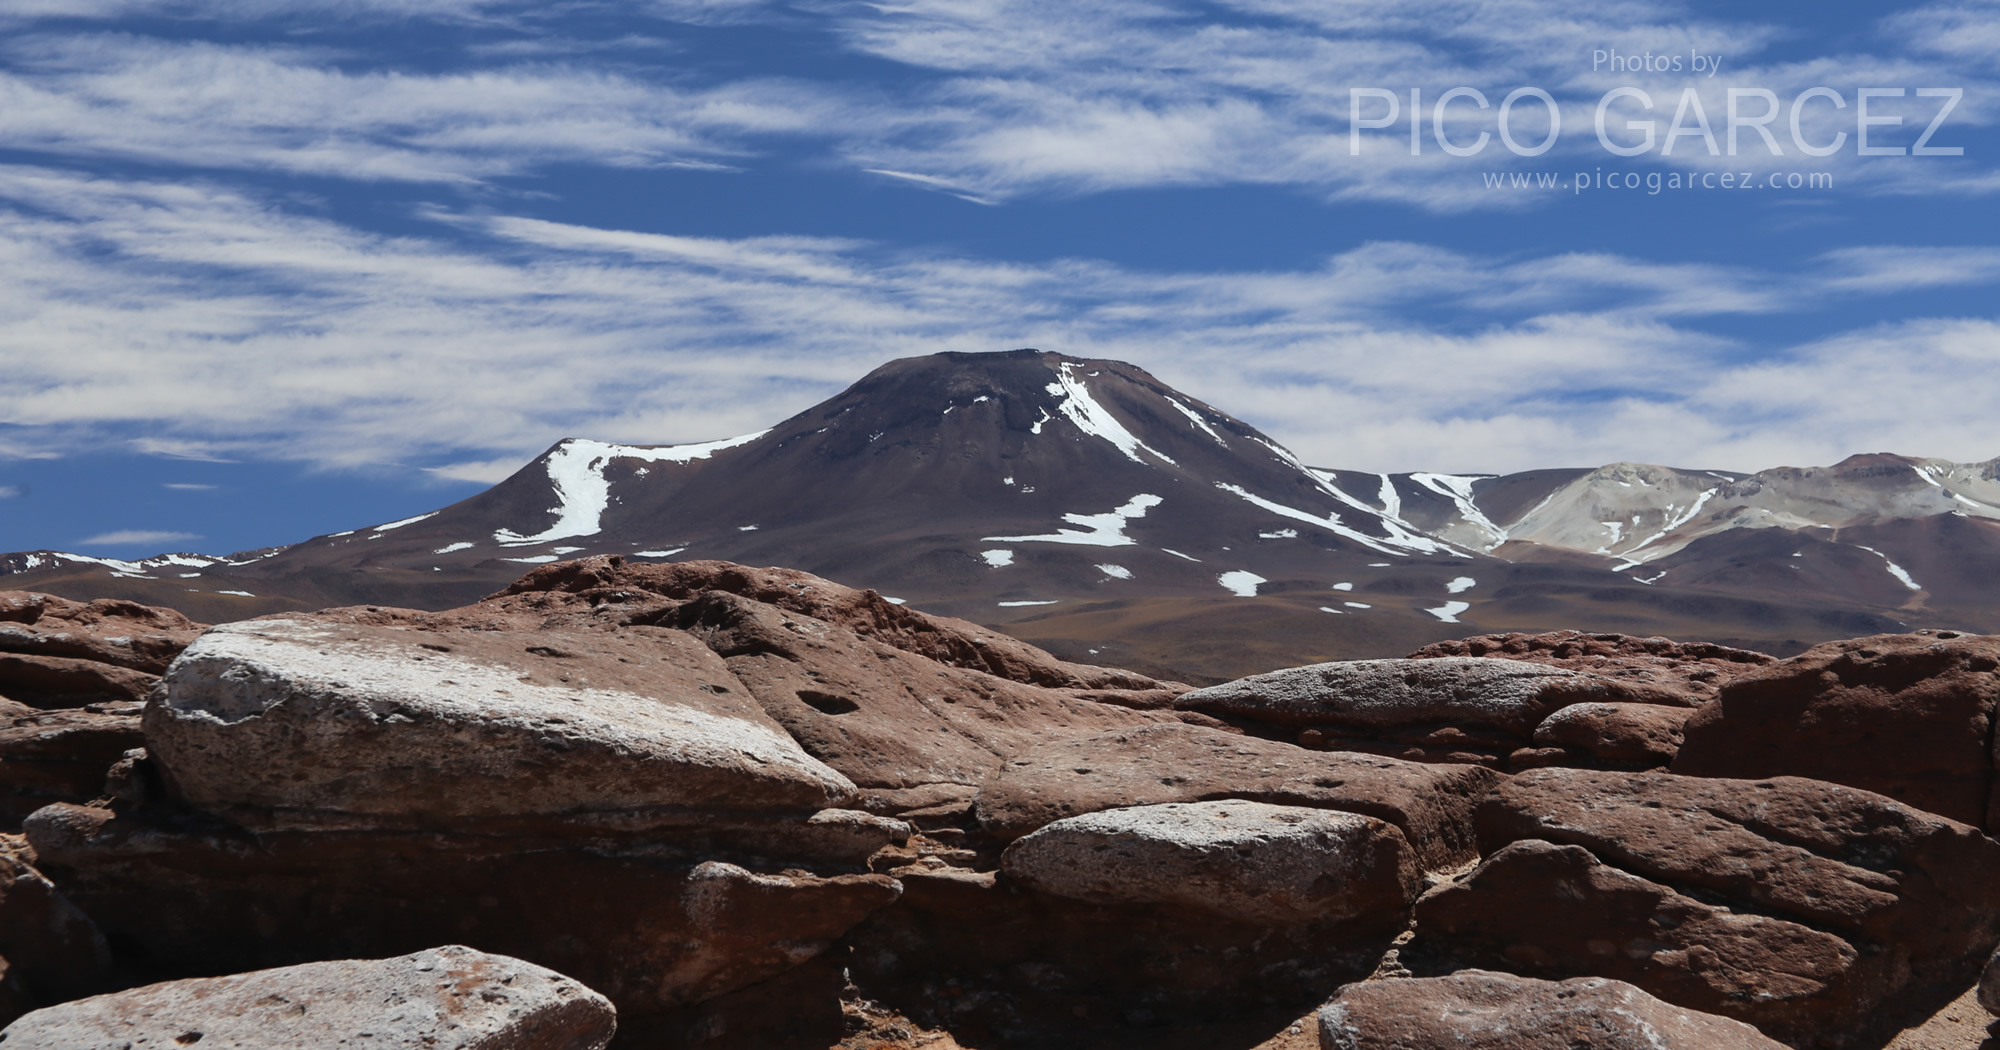 Atacama - Photos by Pico Garcez